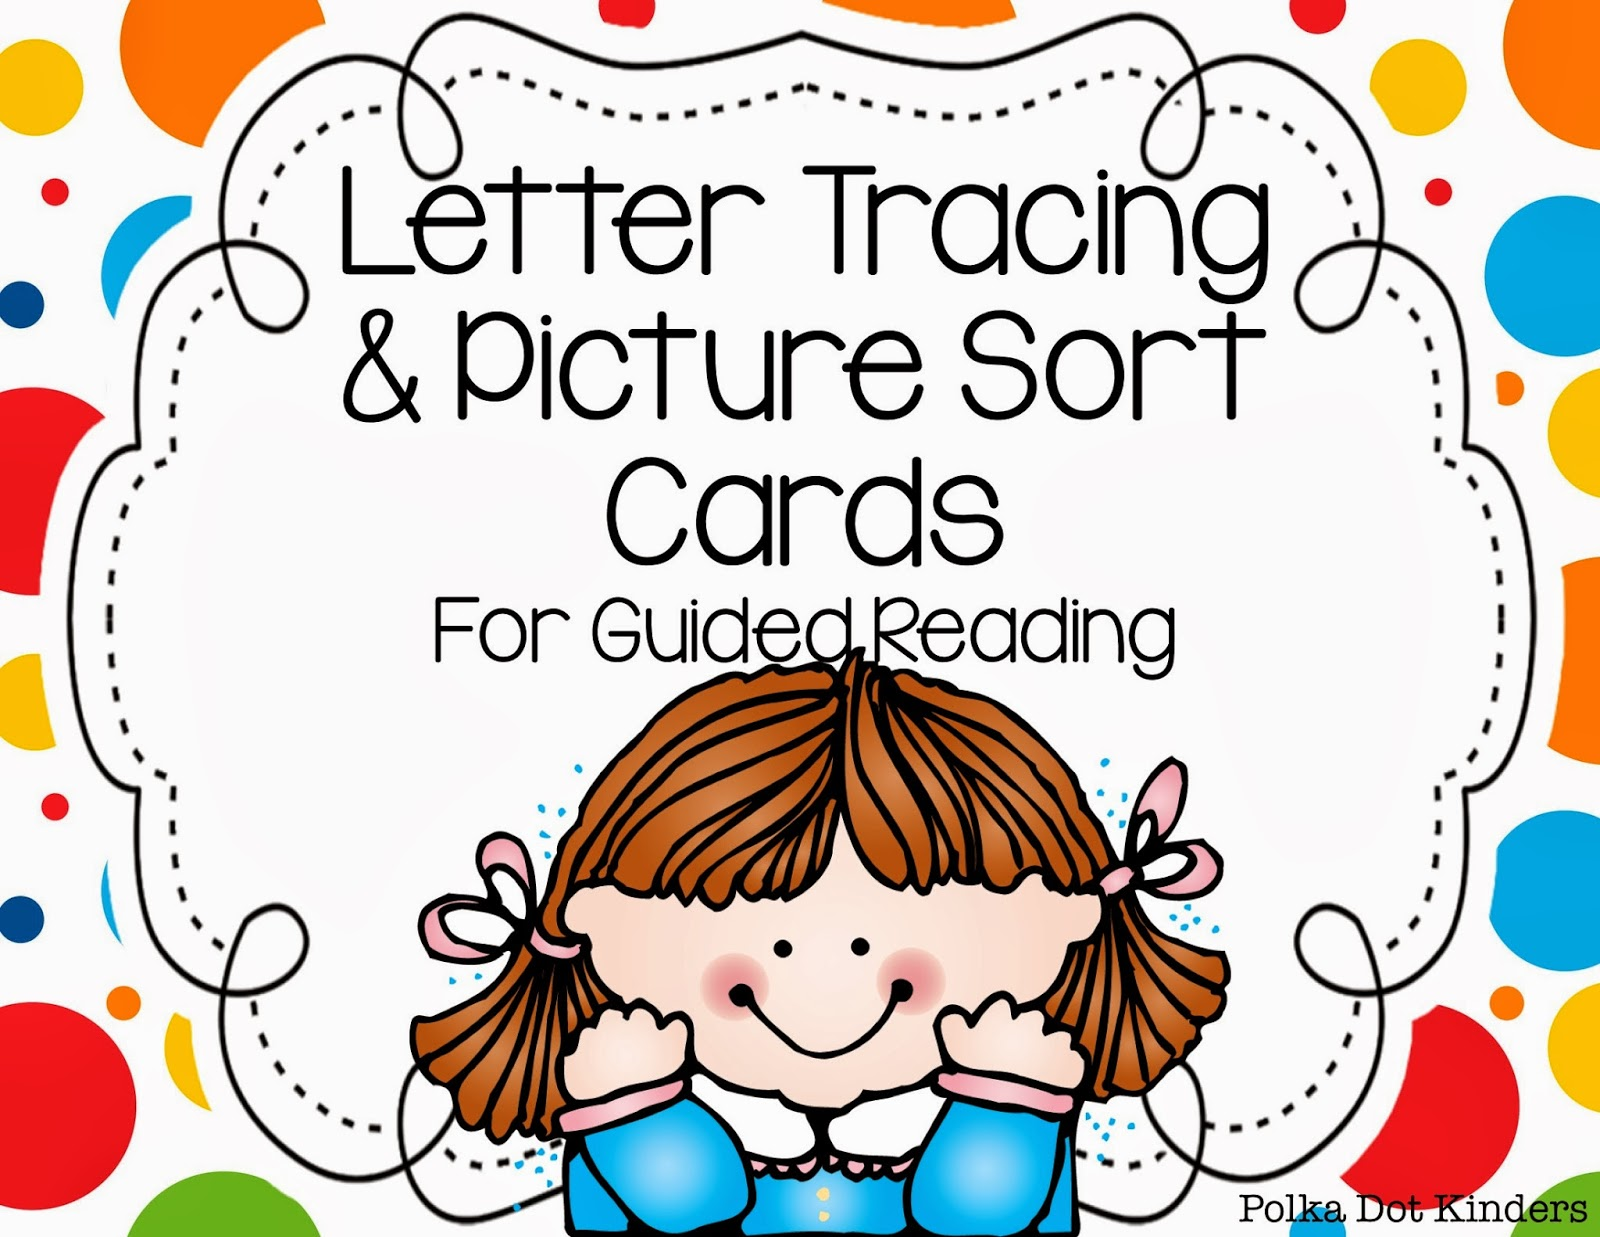 http://www.teacherspayteachers.com/Product/Guided-Reading-Word-Sort-Cards-Letter-Tracing-Book-952353